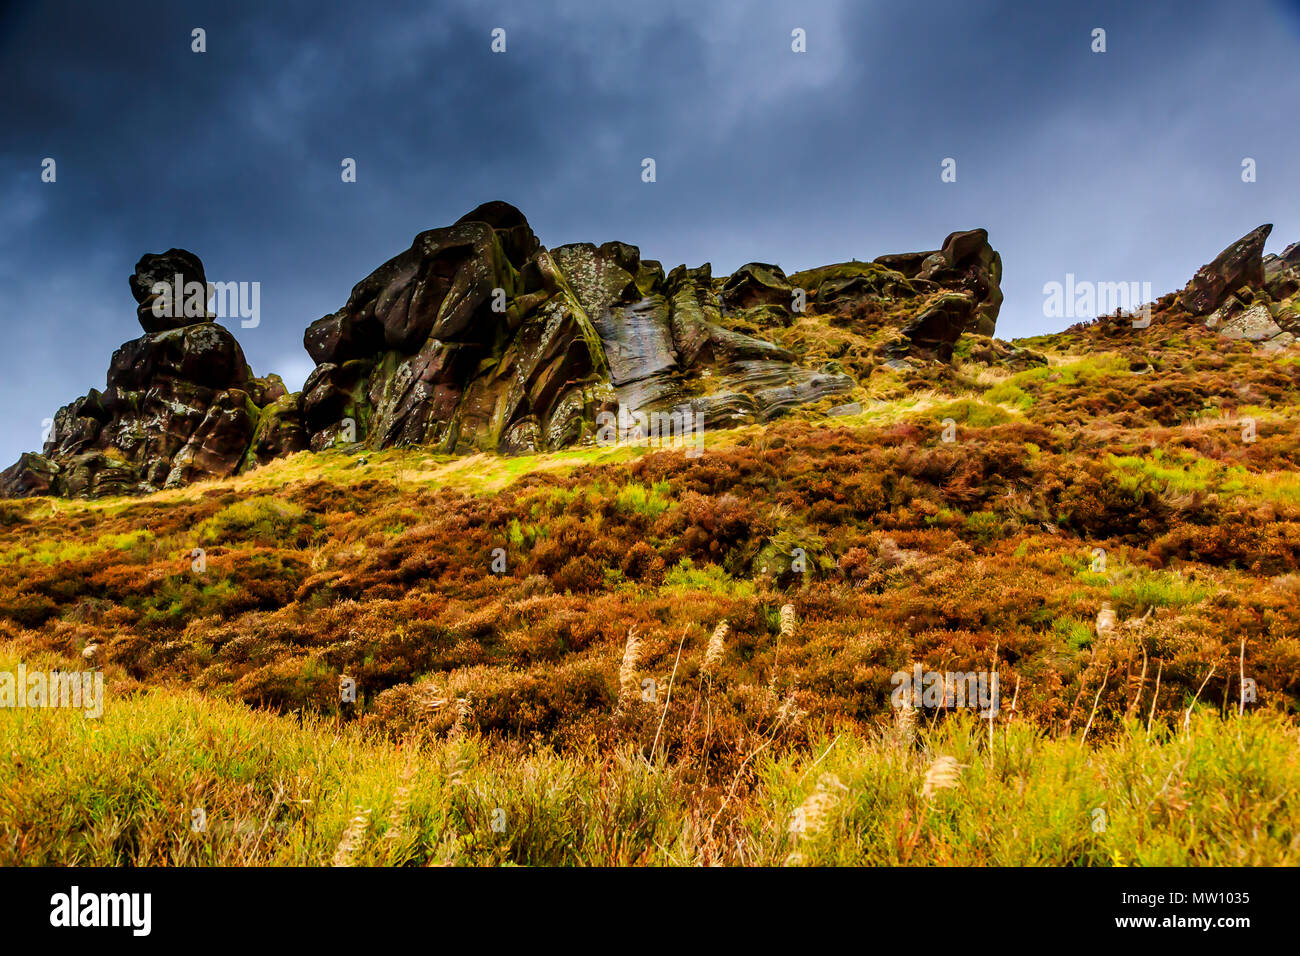 A rocky outcrop on the rolling hills of Derbyshire - Stock Image